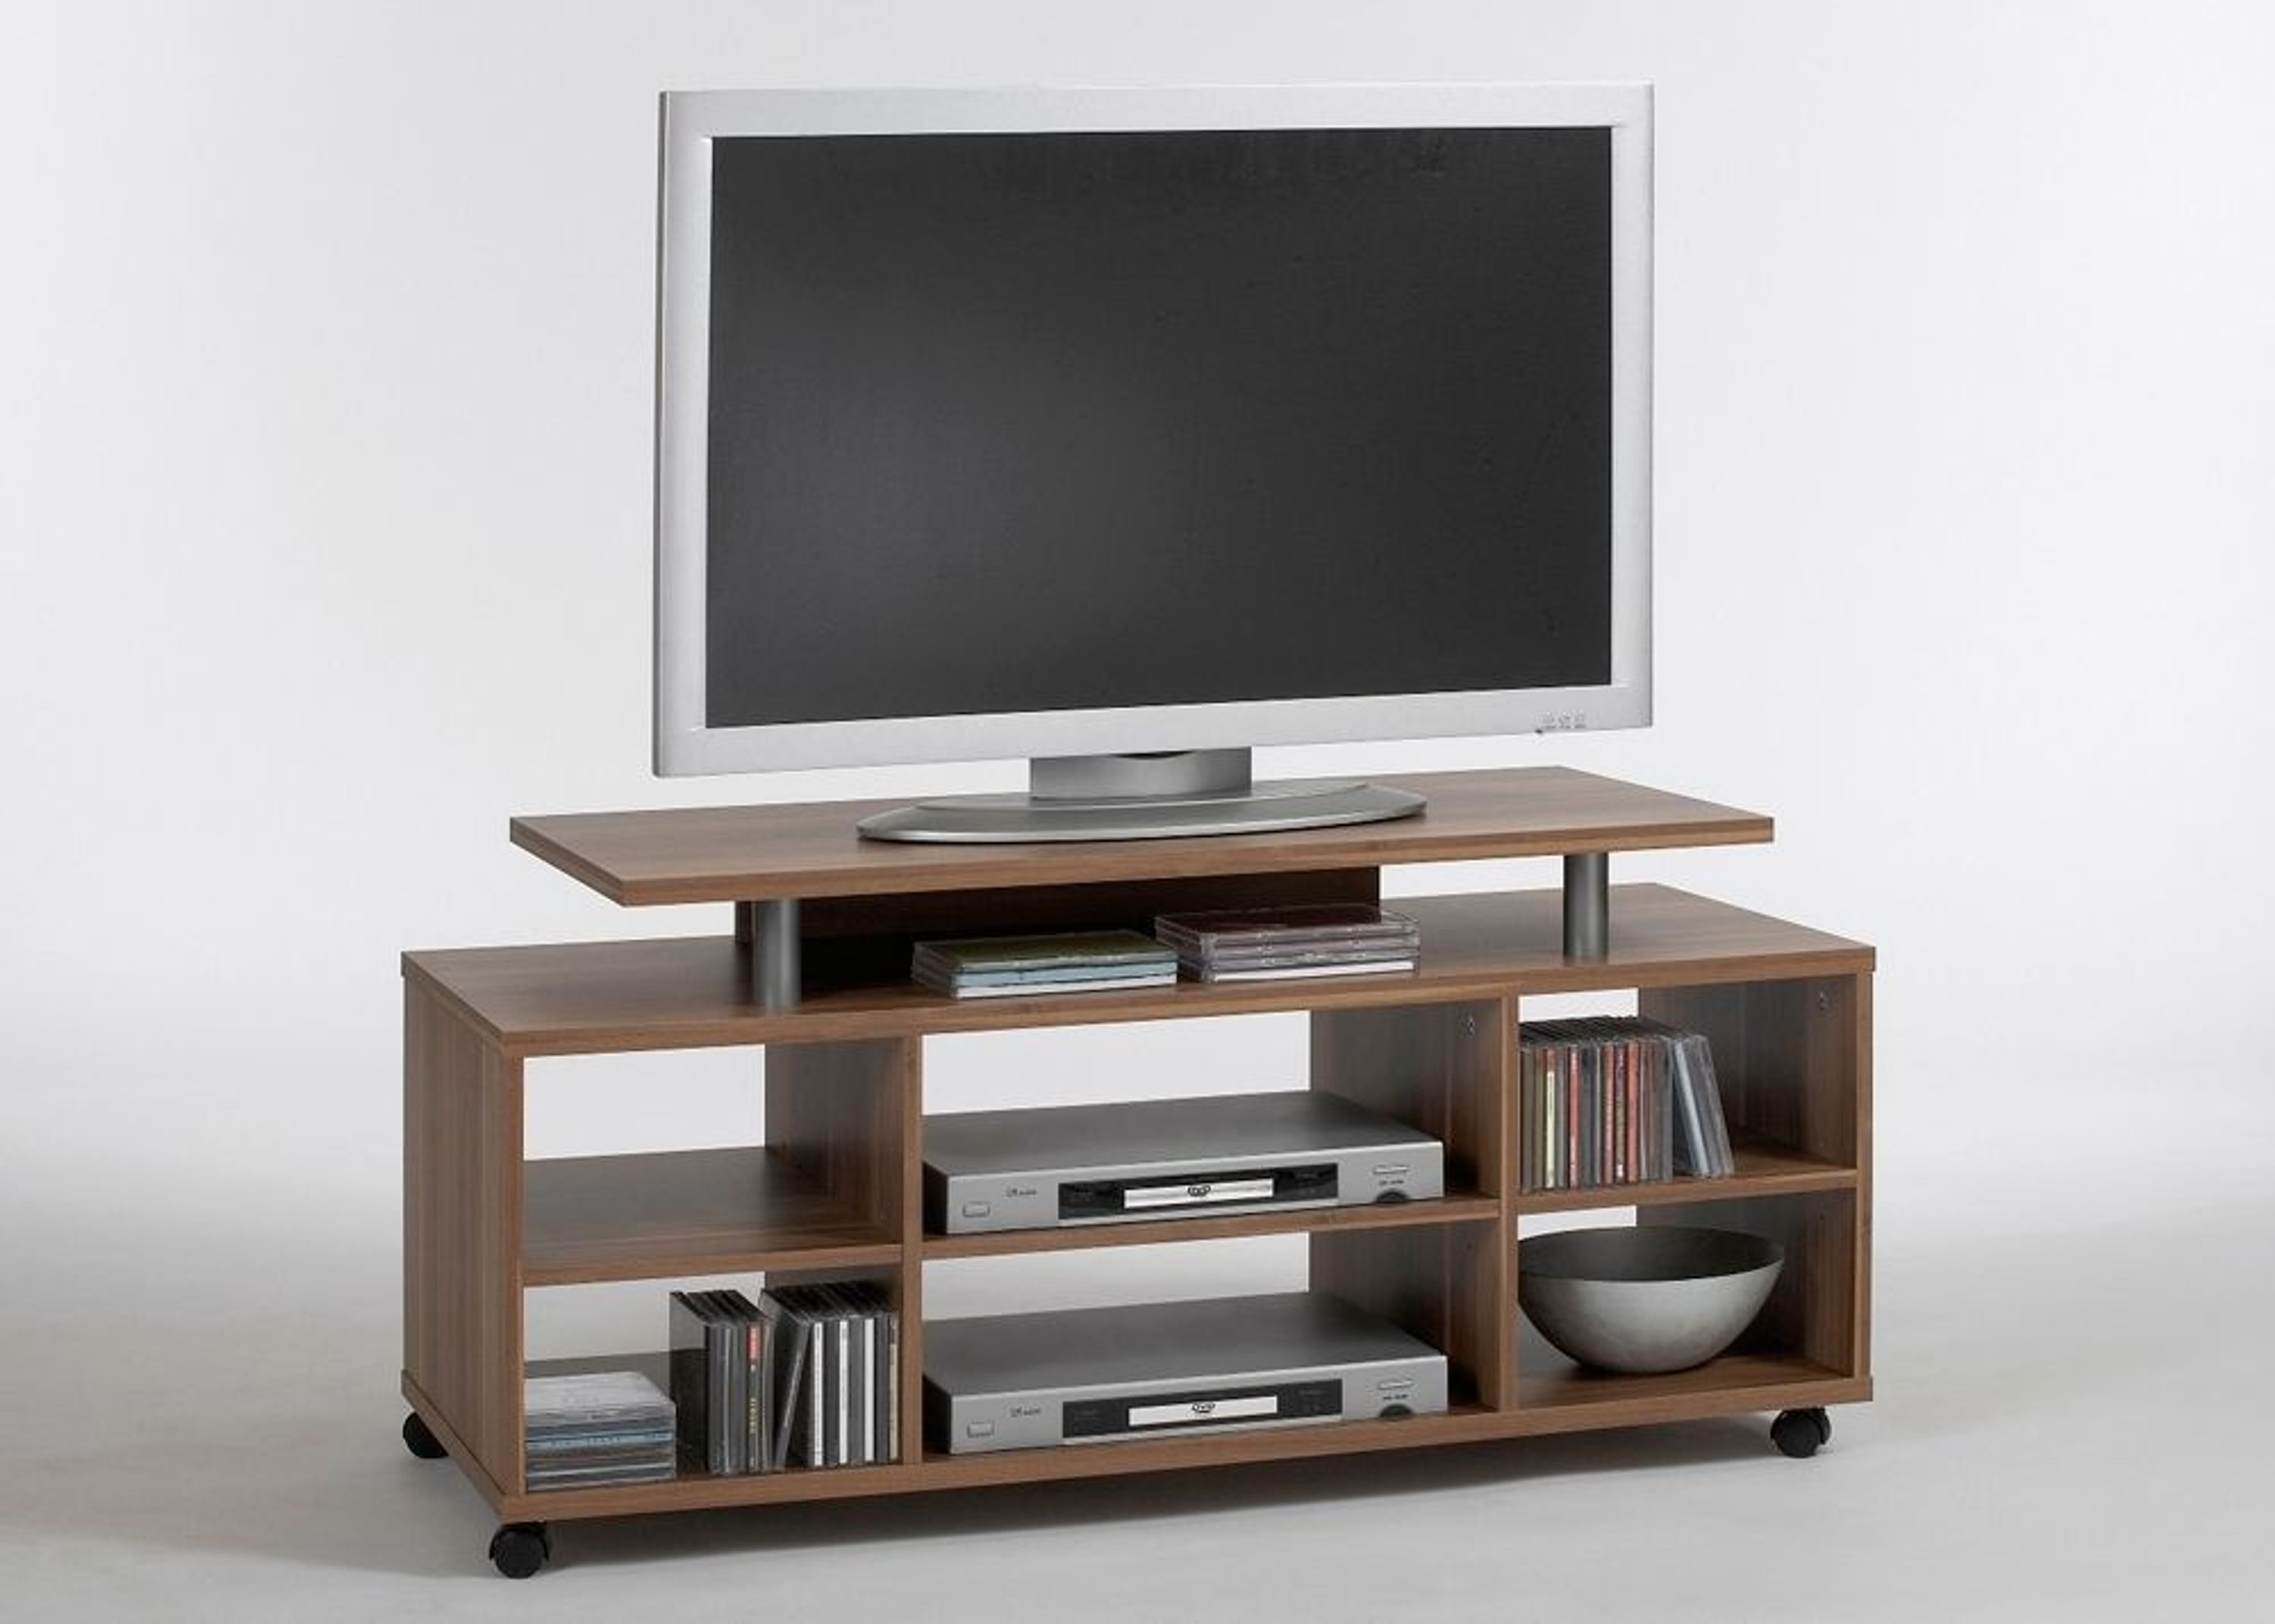 tv schrank variant 21 lowboard auf rollen phonom bel zwetschge 8057 kaufen bei. Black Bedroom Furniture Sets. Home Design Ideas